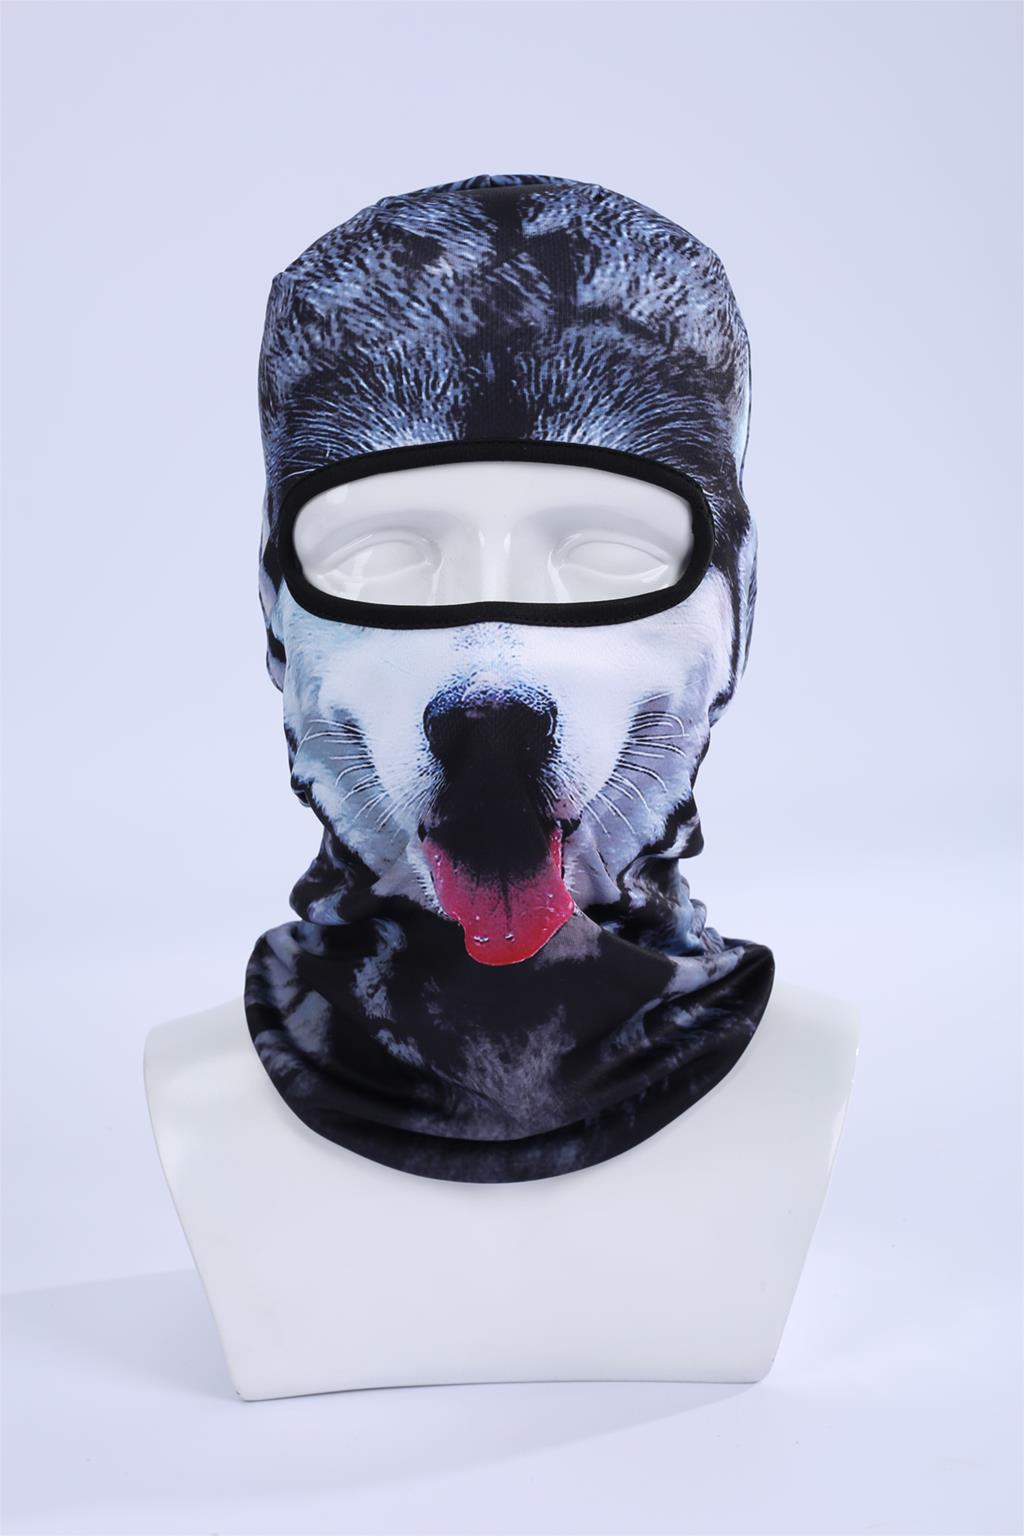 Hot Sale 2016 3D Cap Dog Animal Outdoor Sports Bicycle Cycling Motorcycle Masks Ski Hood Hat Veil Balaclava UV Full Face Mask 7